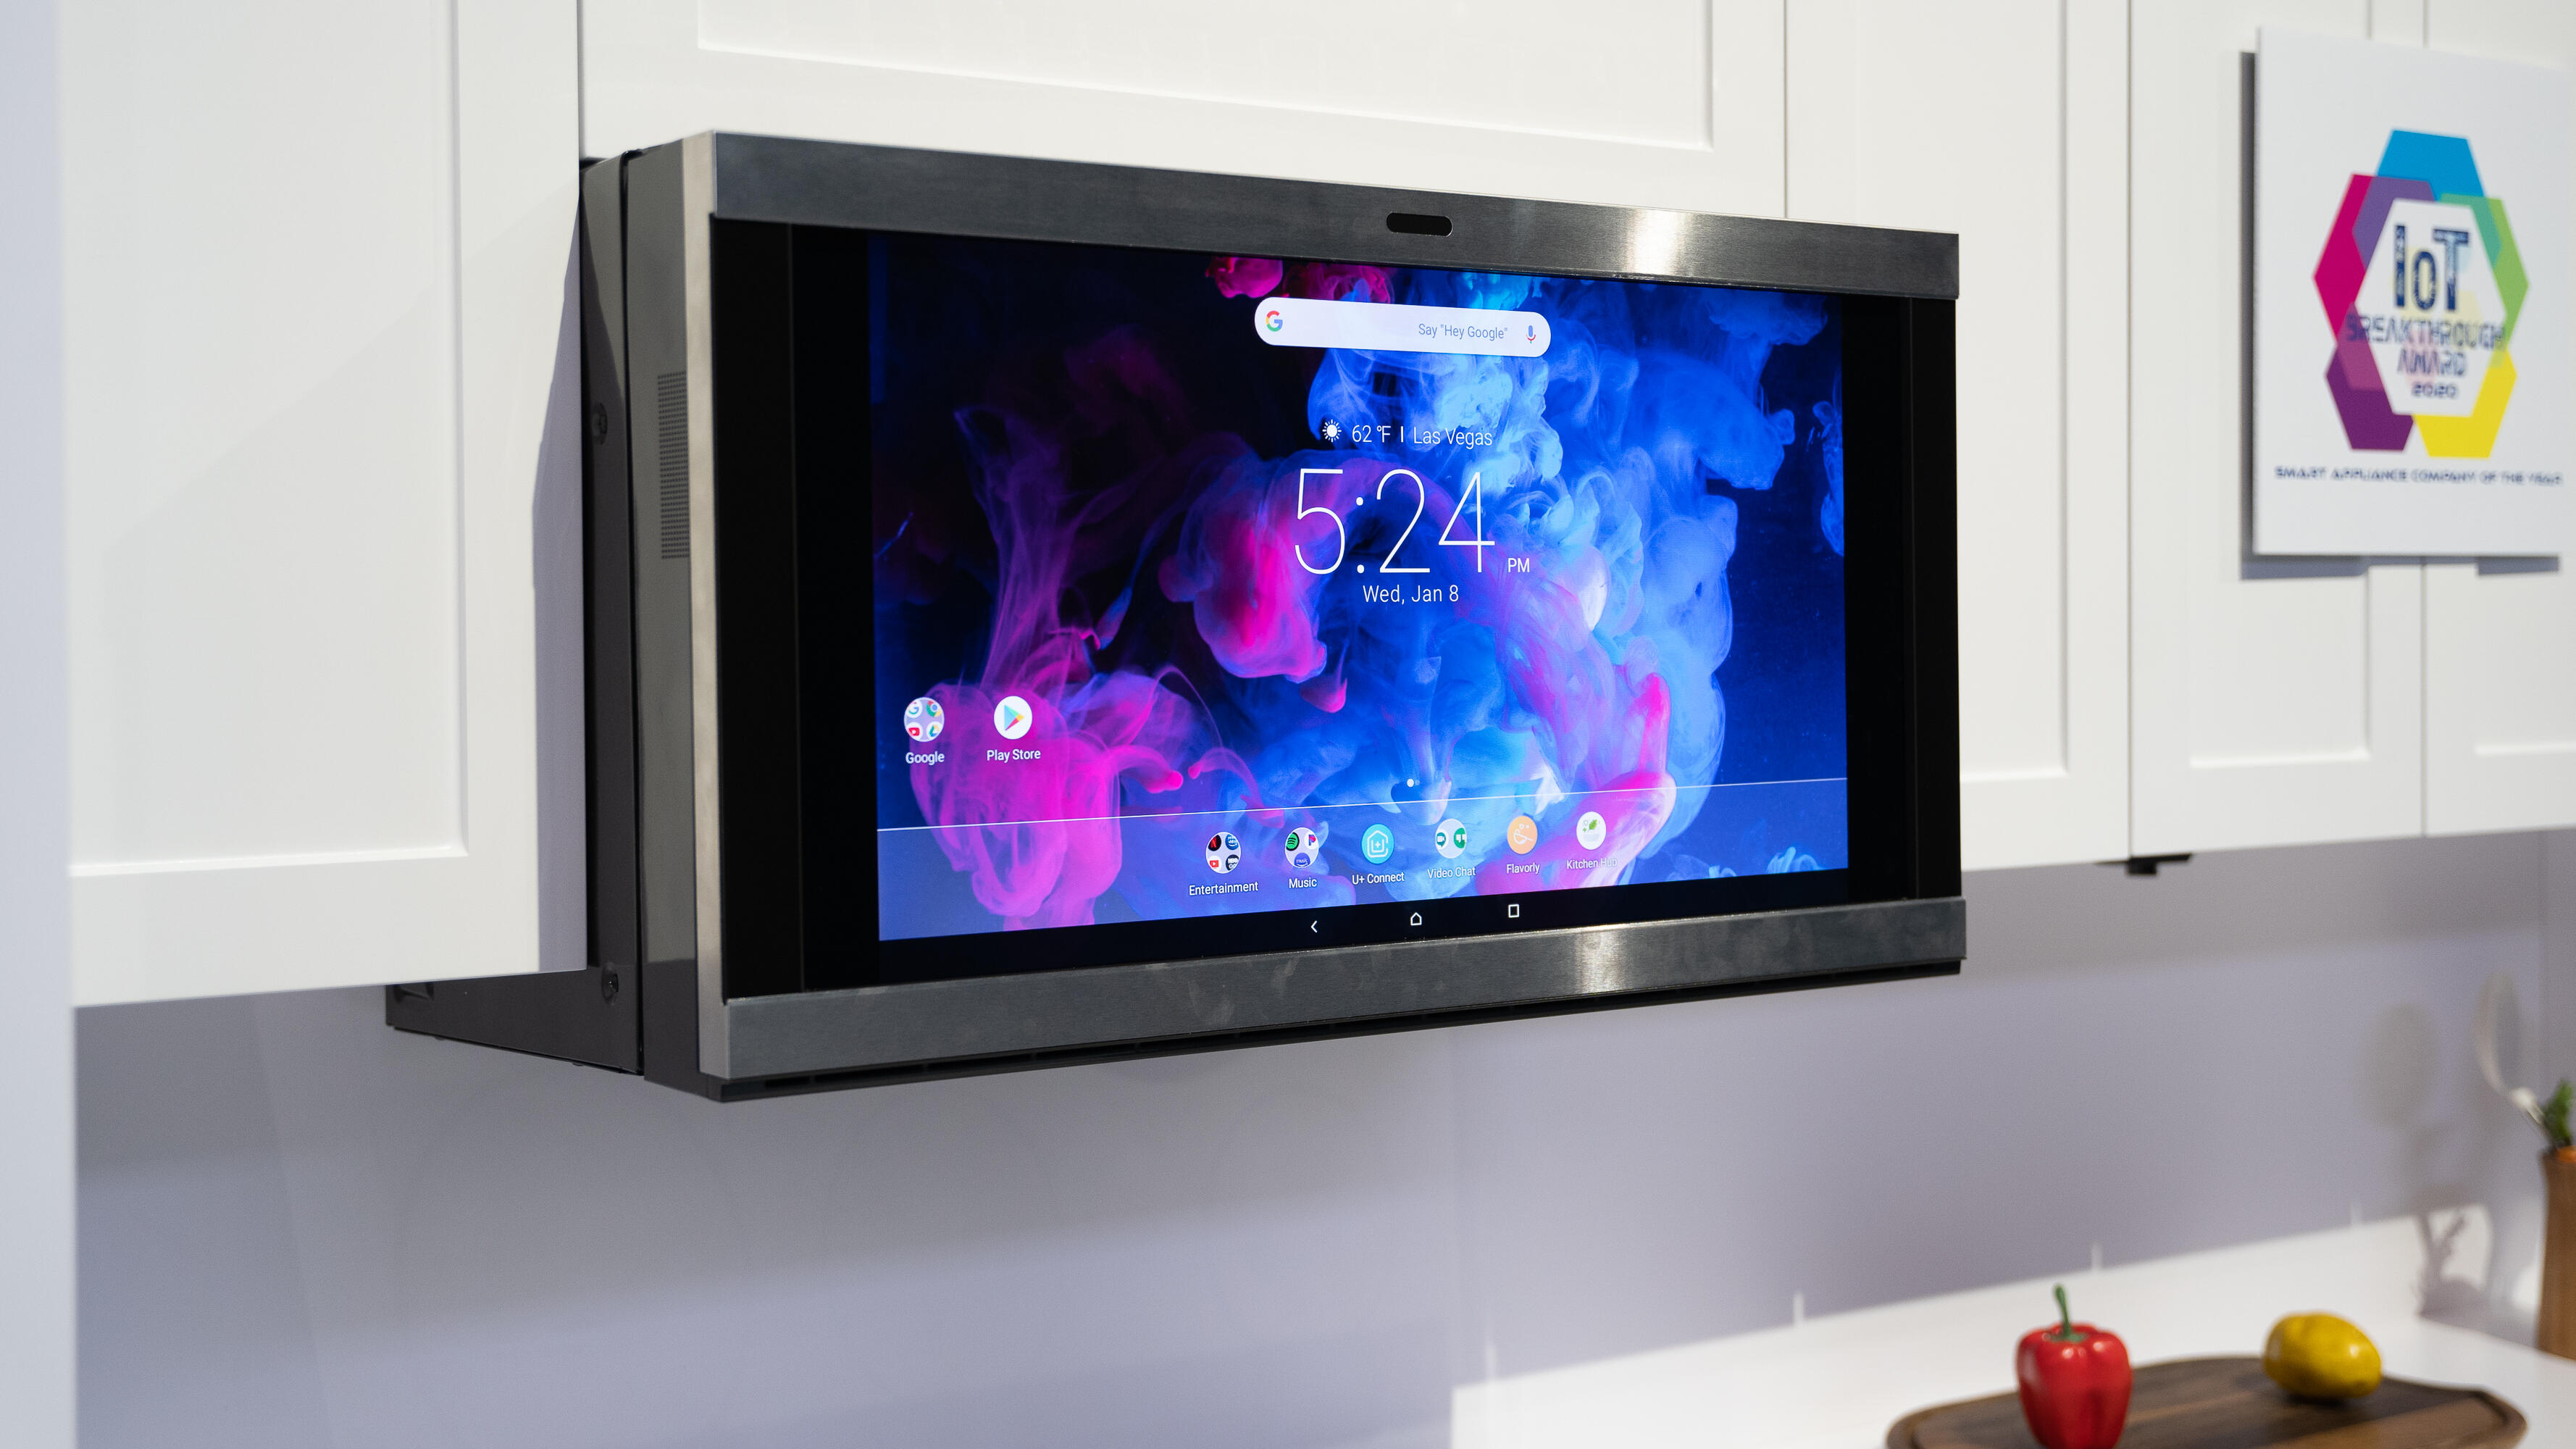 Ge Appliances New Kitchen Hub Is A Mega Touchscreen That Can Microwave Cnet